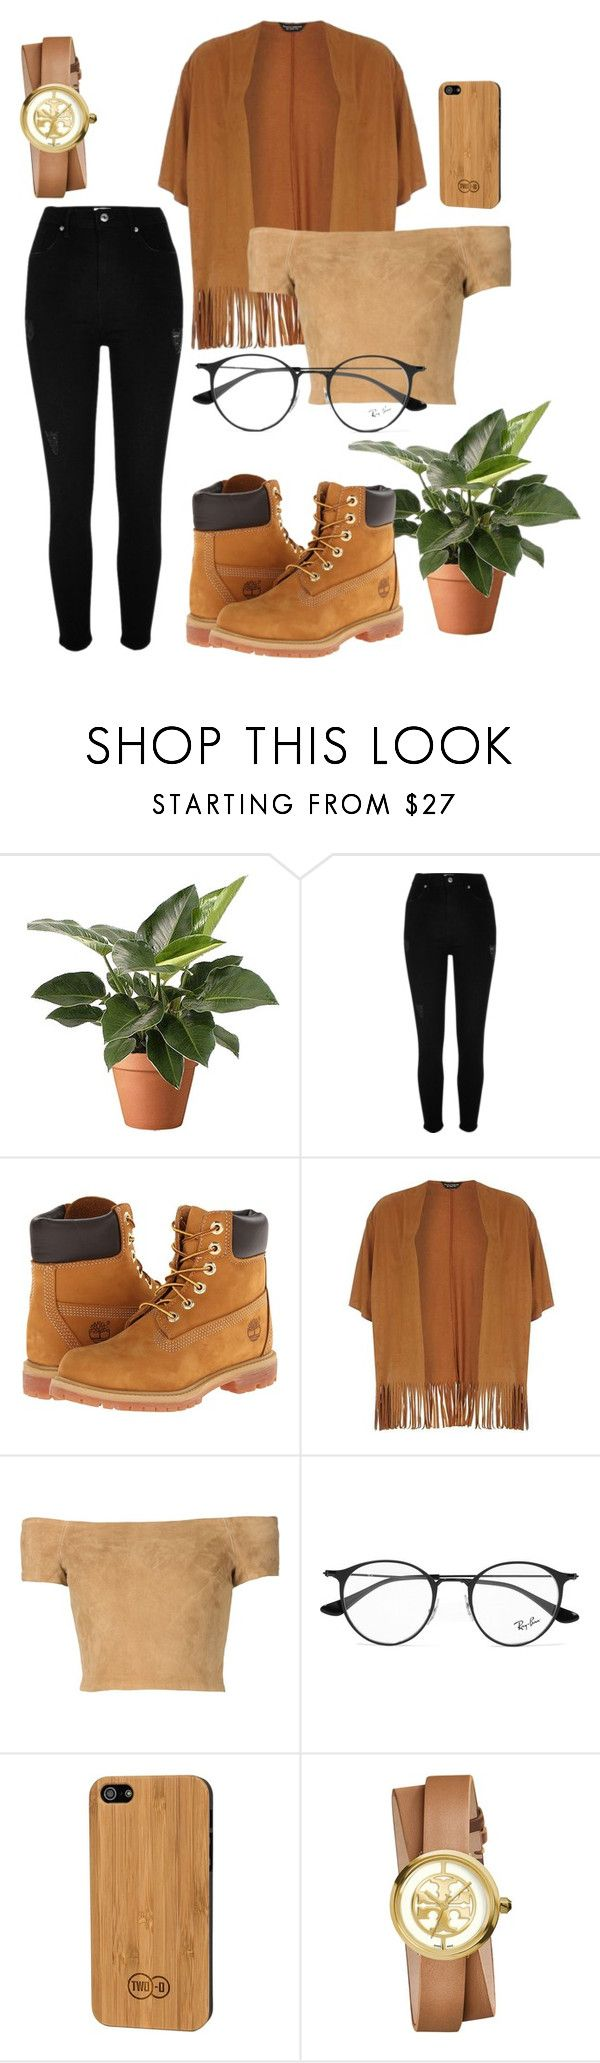 """""""Coffee Girl"""" by capeloise ❤ liked on Polyvore featuring River Island, Timberland, Dorothy Perkins, Alice + Olivia, Ray-Ban, TWO-O and Tory Burch"""